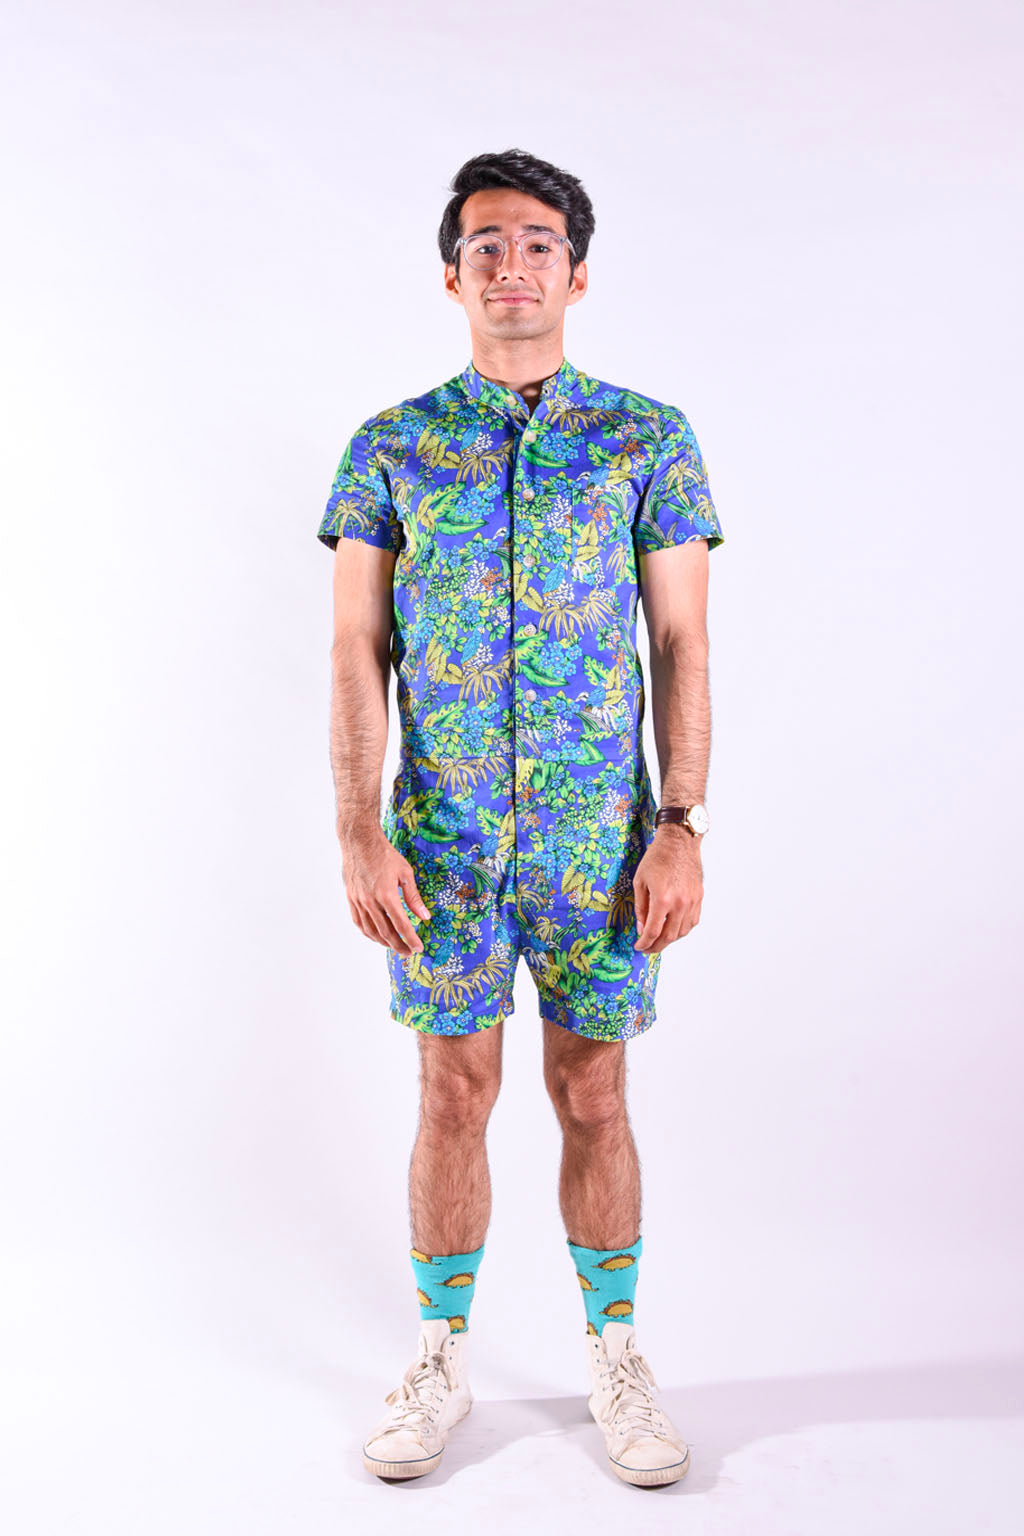 bf8fc3bef3b3 Tropical Print romper.  119.00. Notify me when ...